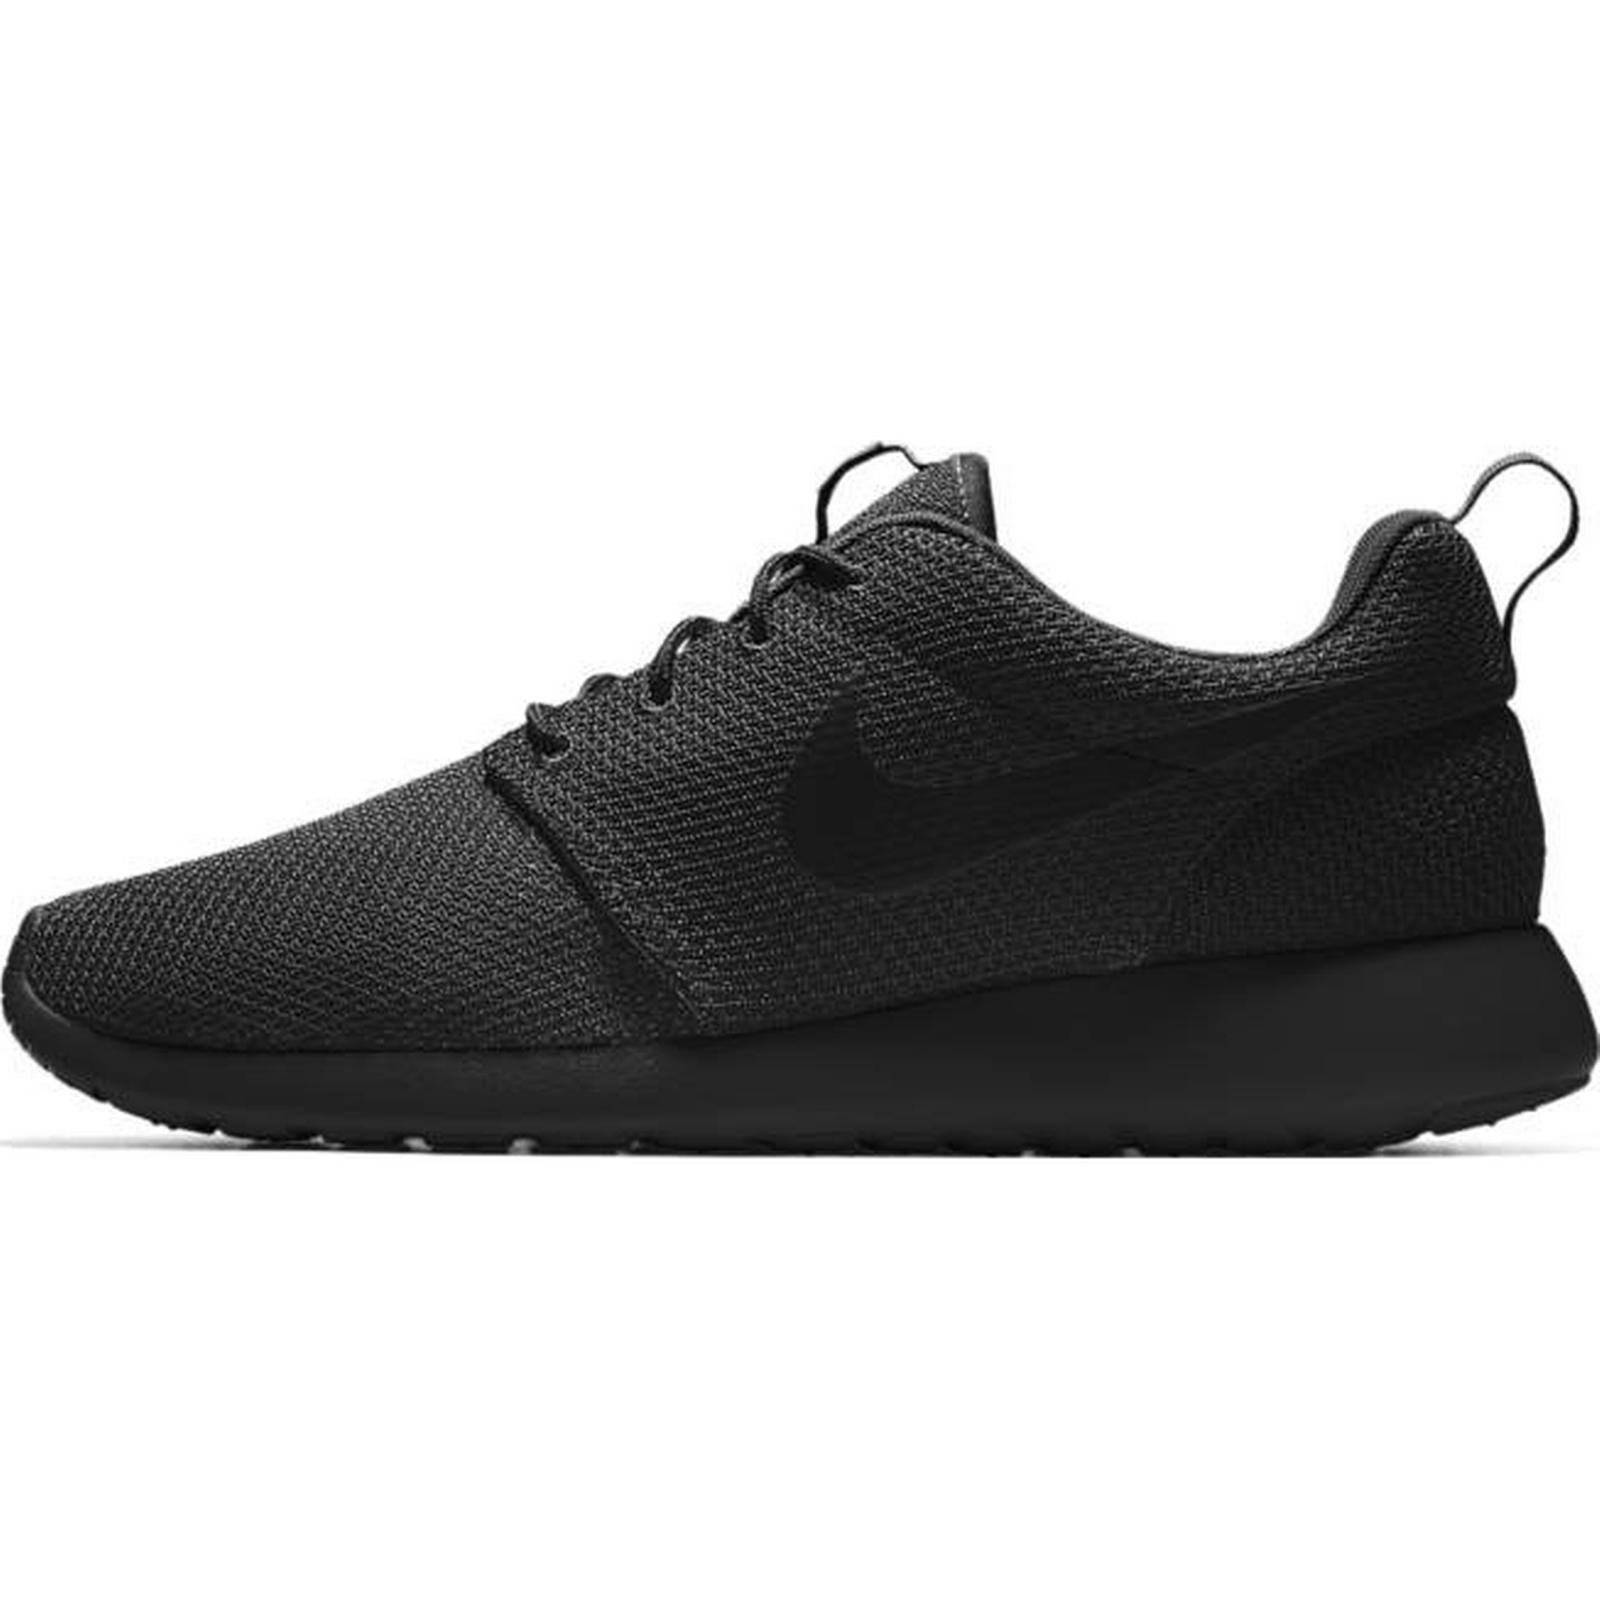 52f05026ac487 ... release date gentlemen ladies nike buty mskie one nike roshe one mskie  id your choice 83d2bc